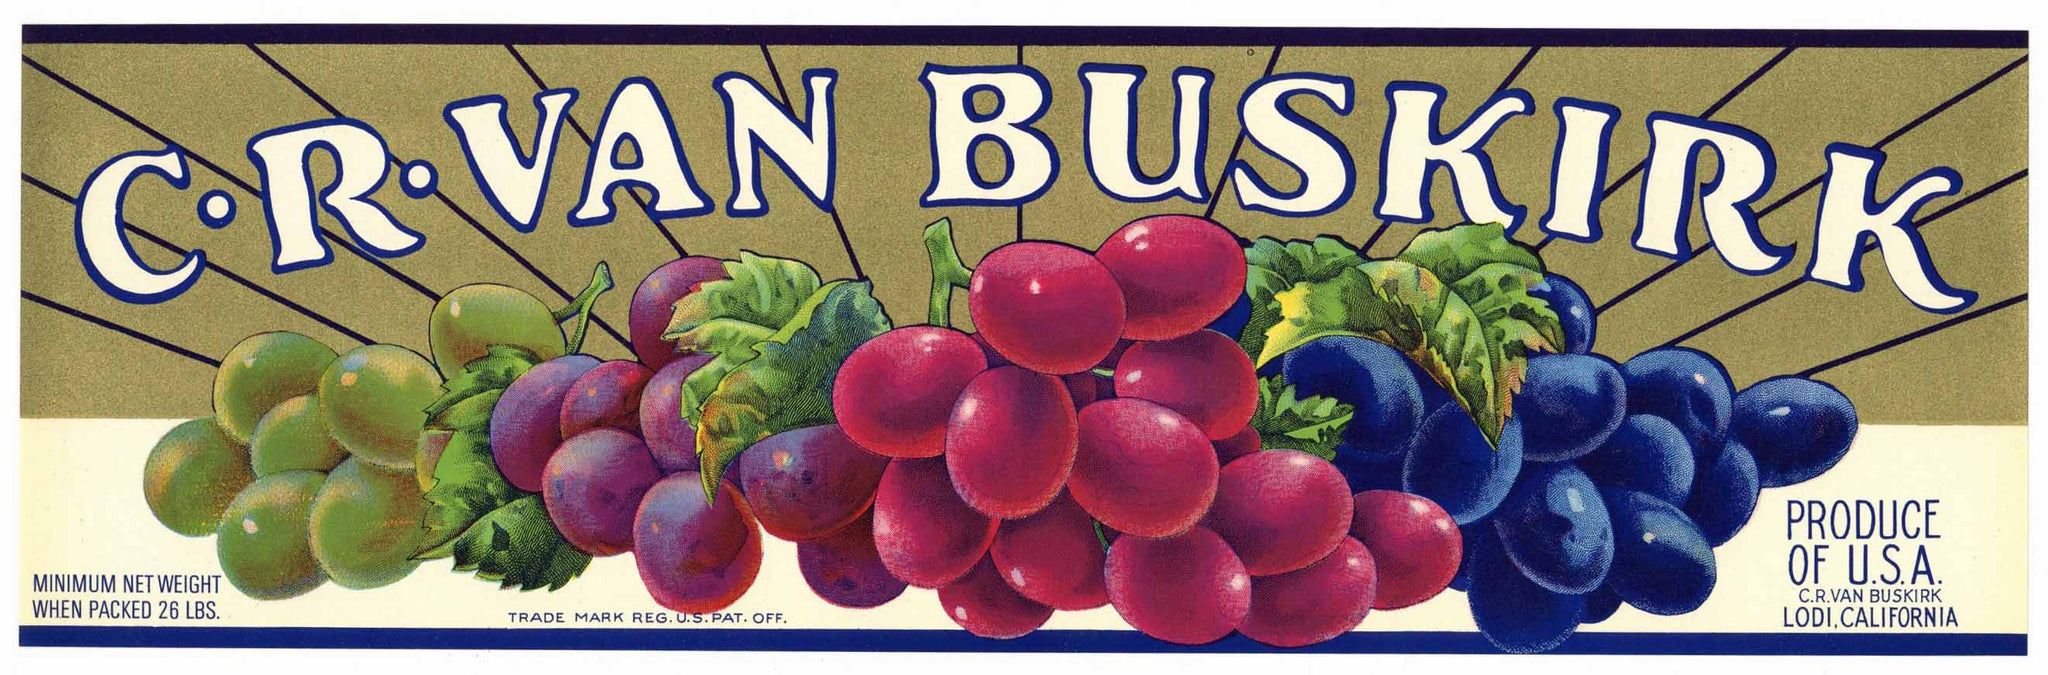 C. R. Van Buskirk Brand Vintage Lodi Grape Crate Label